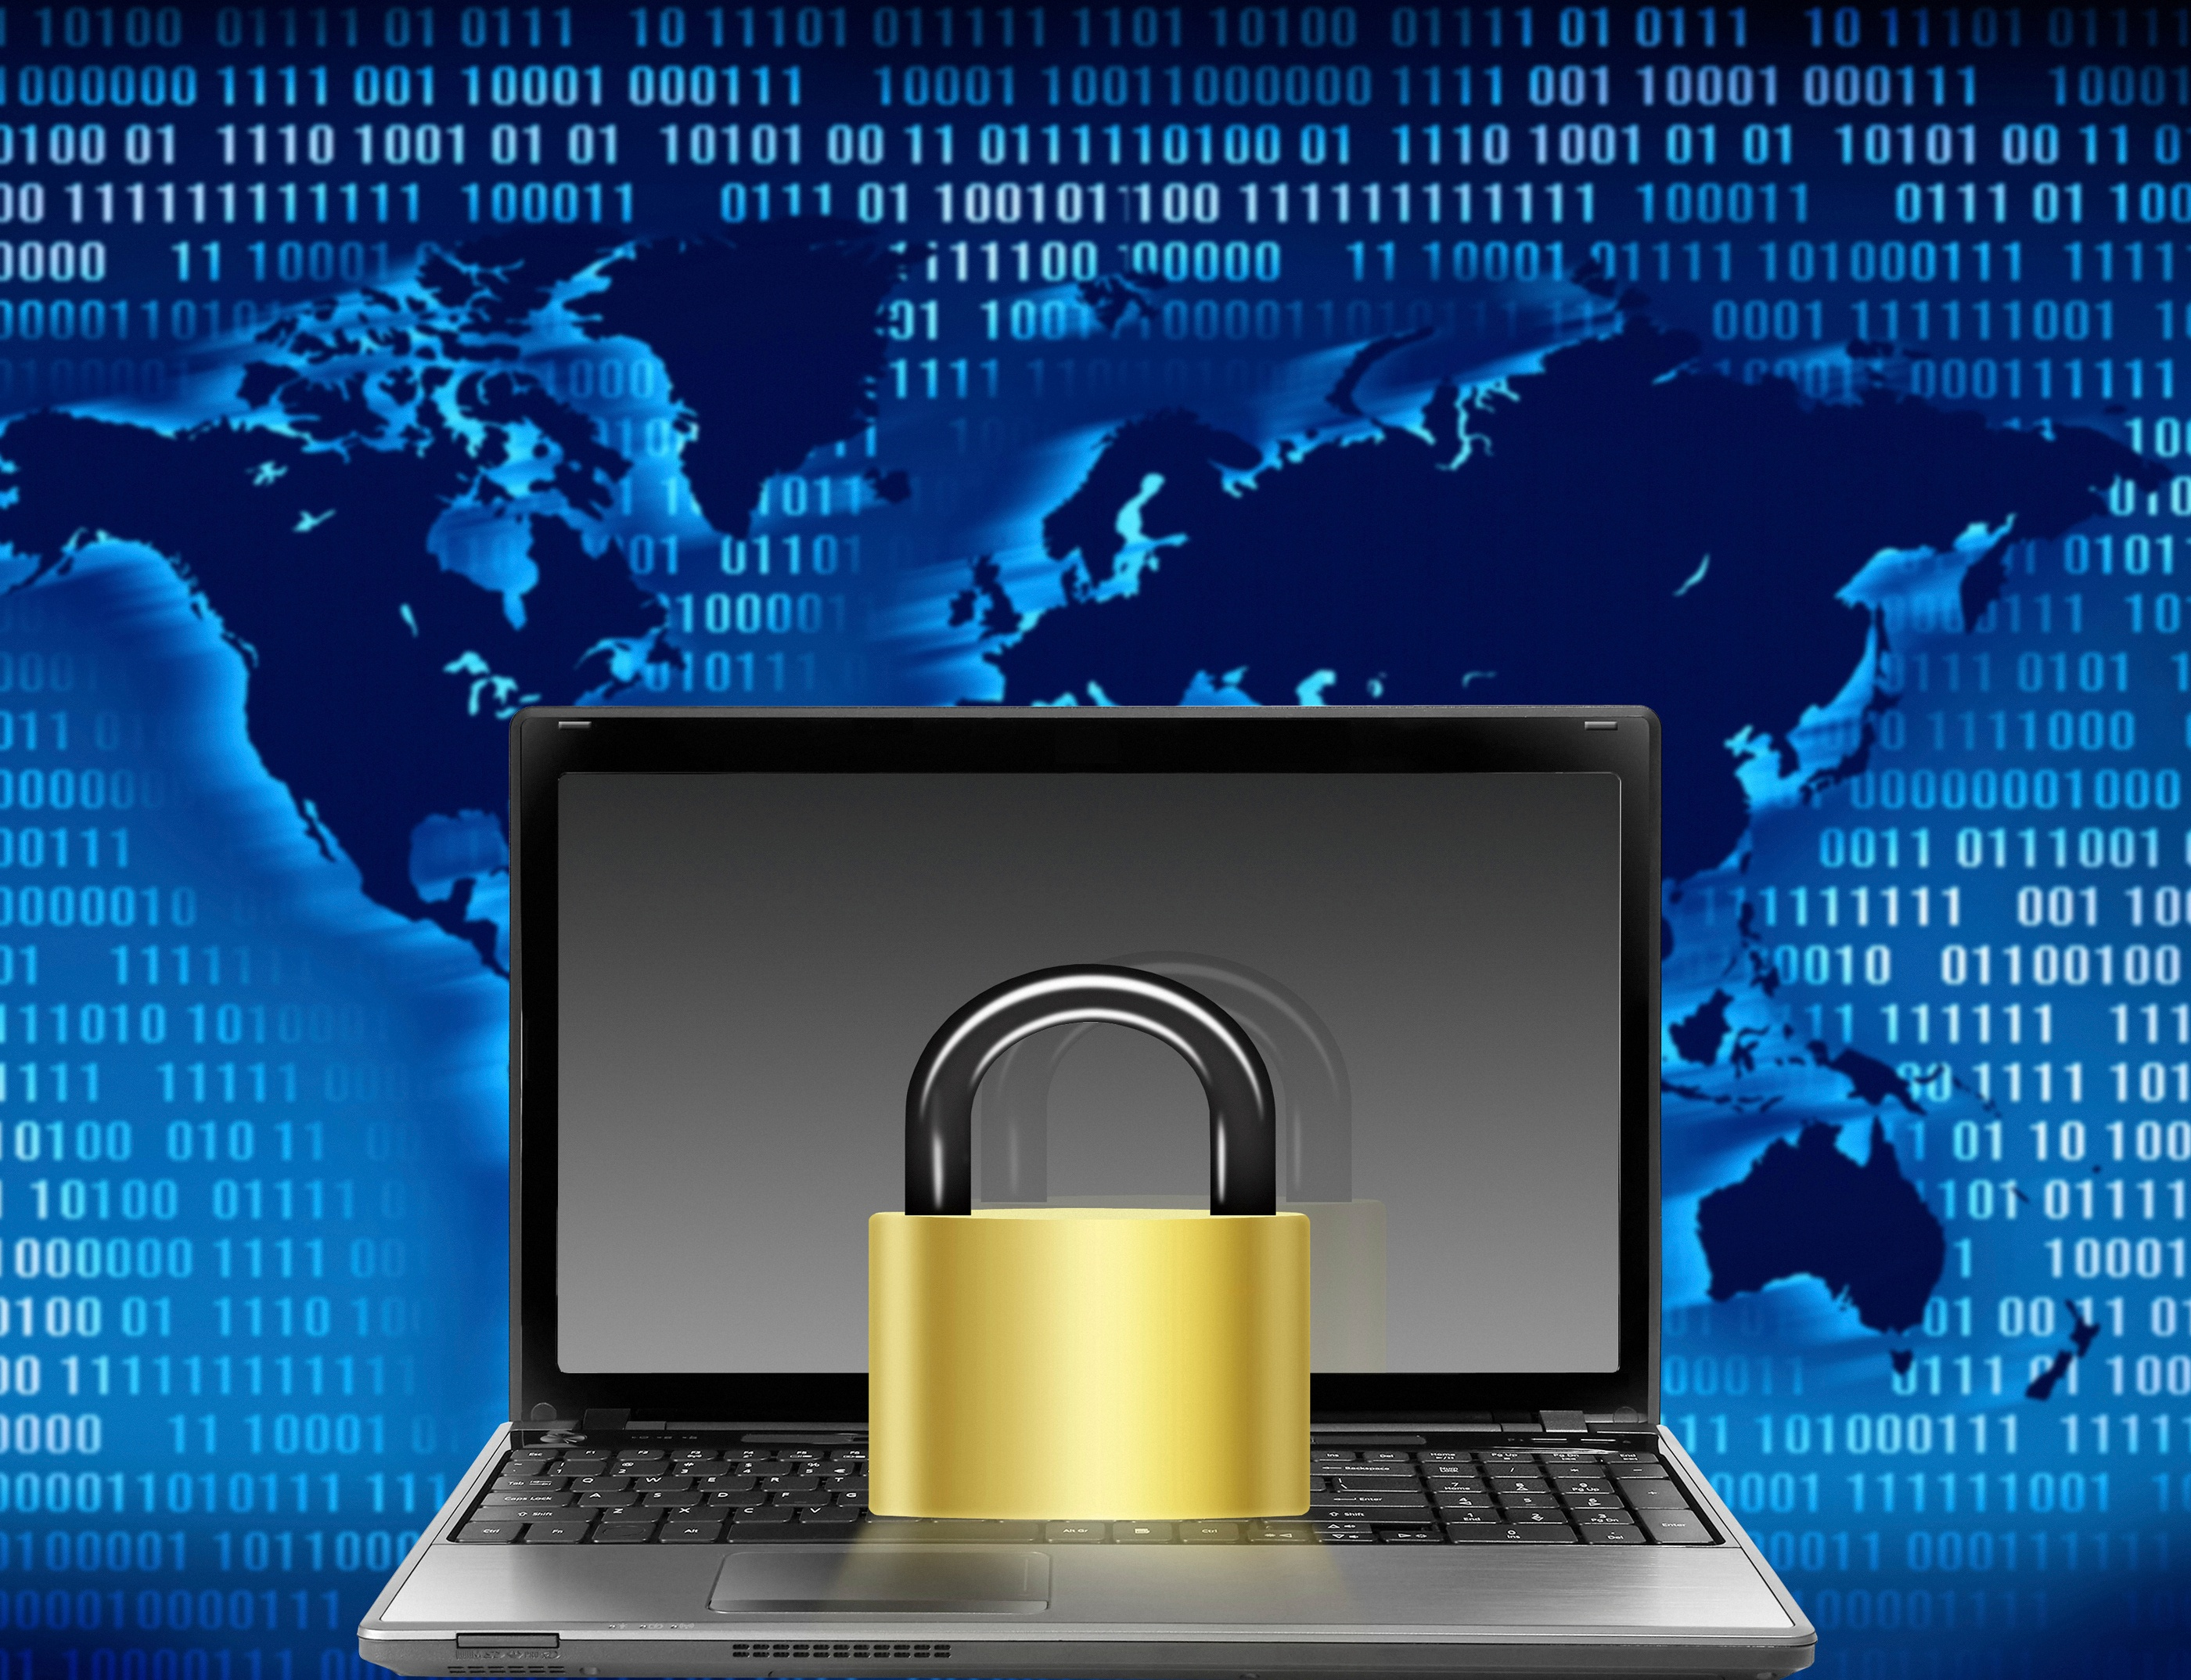 IT-Security-and-Password-Security-and-IT-Support-Baltimore-MD